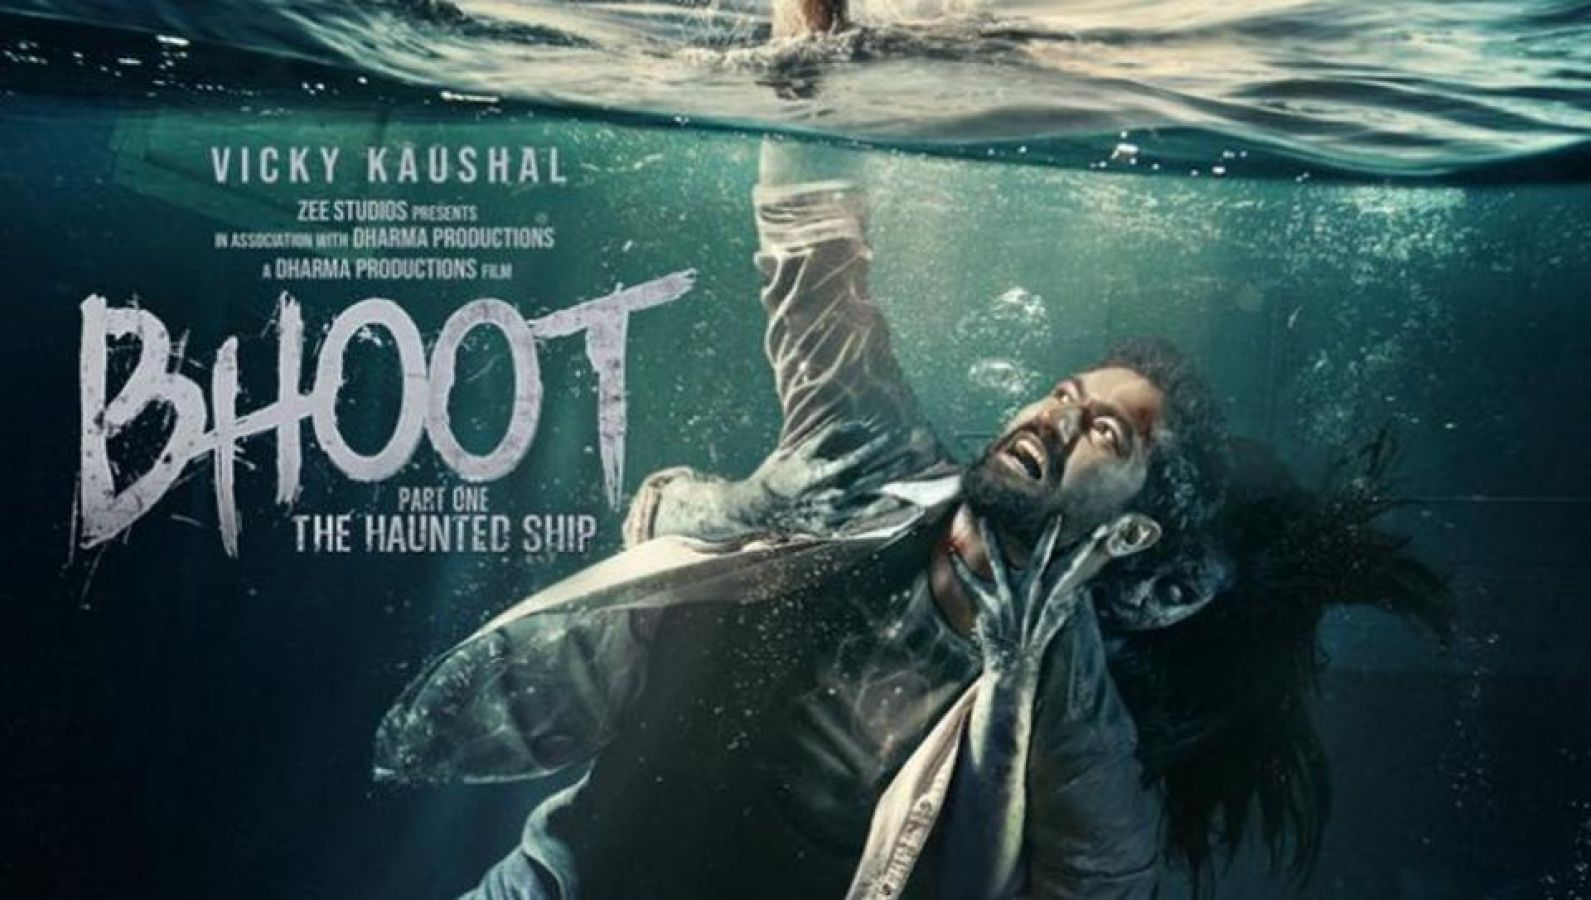 Bhoot Movie Review, Twitter Talk, Audience Reaction And Rating | Vicky Kaushal, Bhumi Pednekar